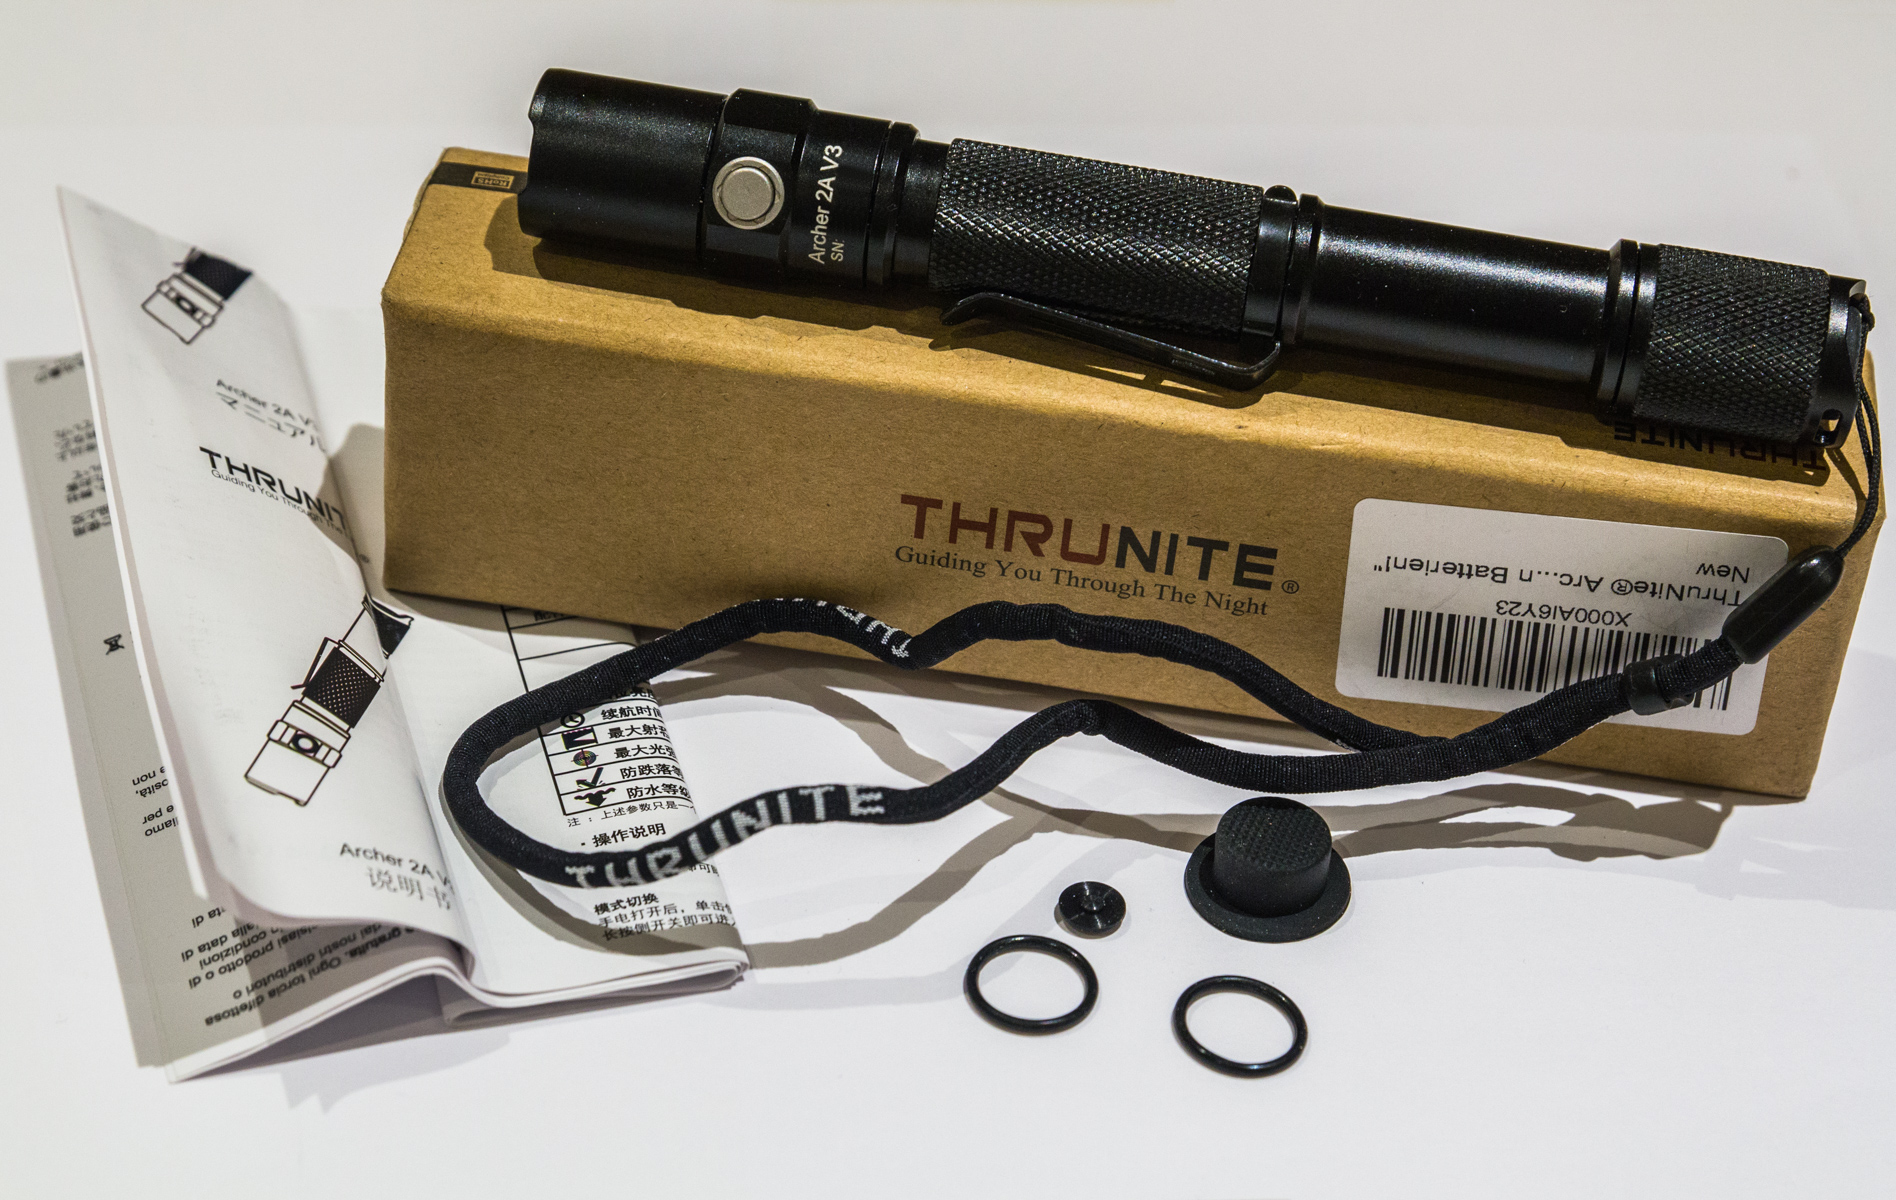 Thrunite Archer 2A V3